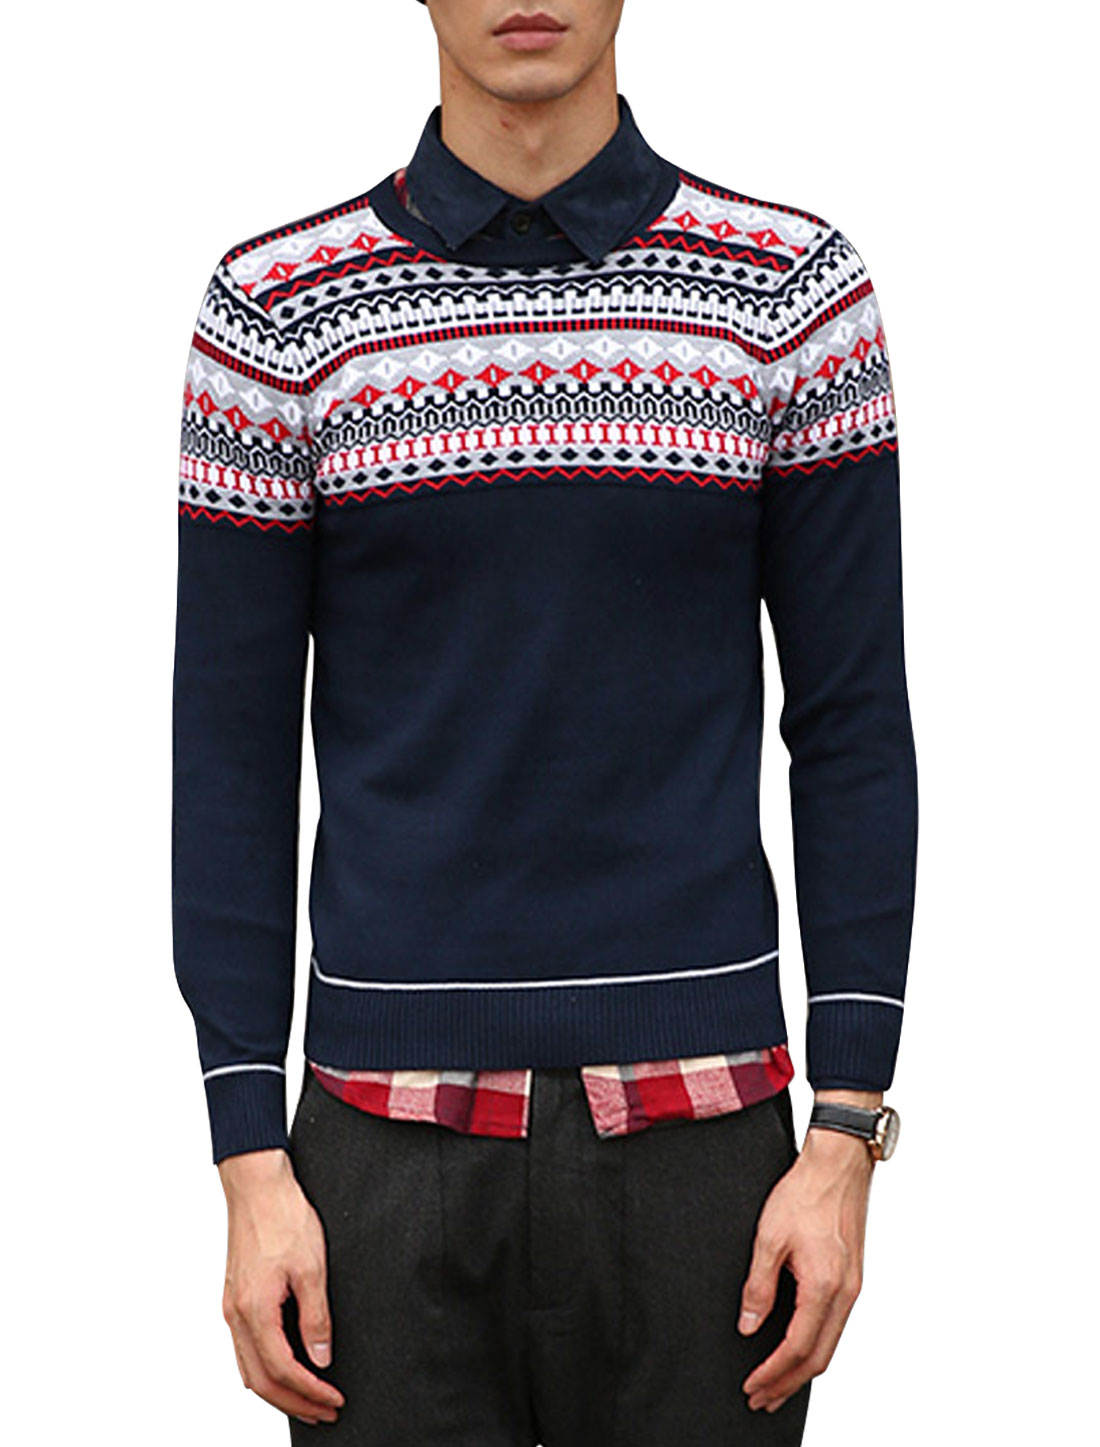 Men Argyle Pattern Zigzag Pattern Crew Neck Pullover Sweater Navy Blue S